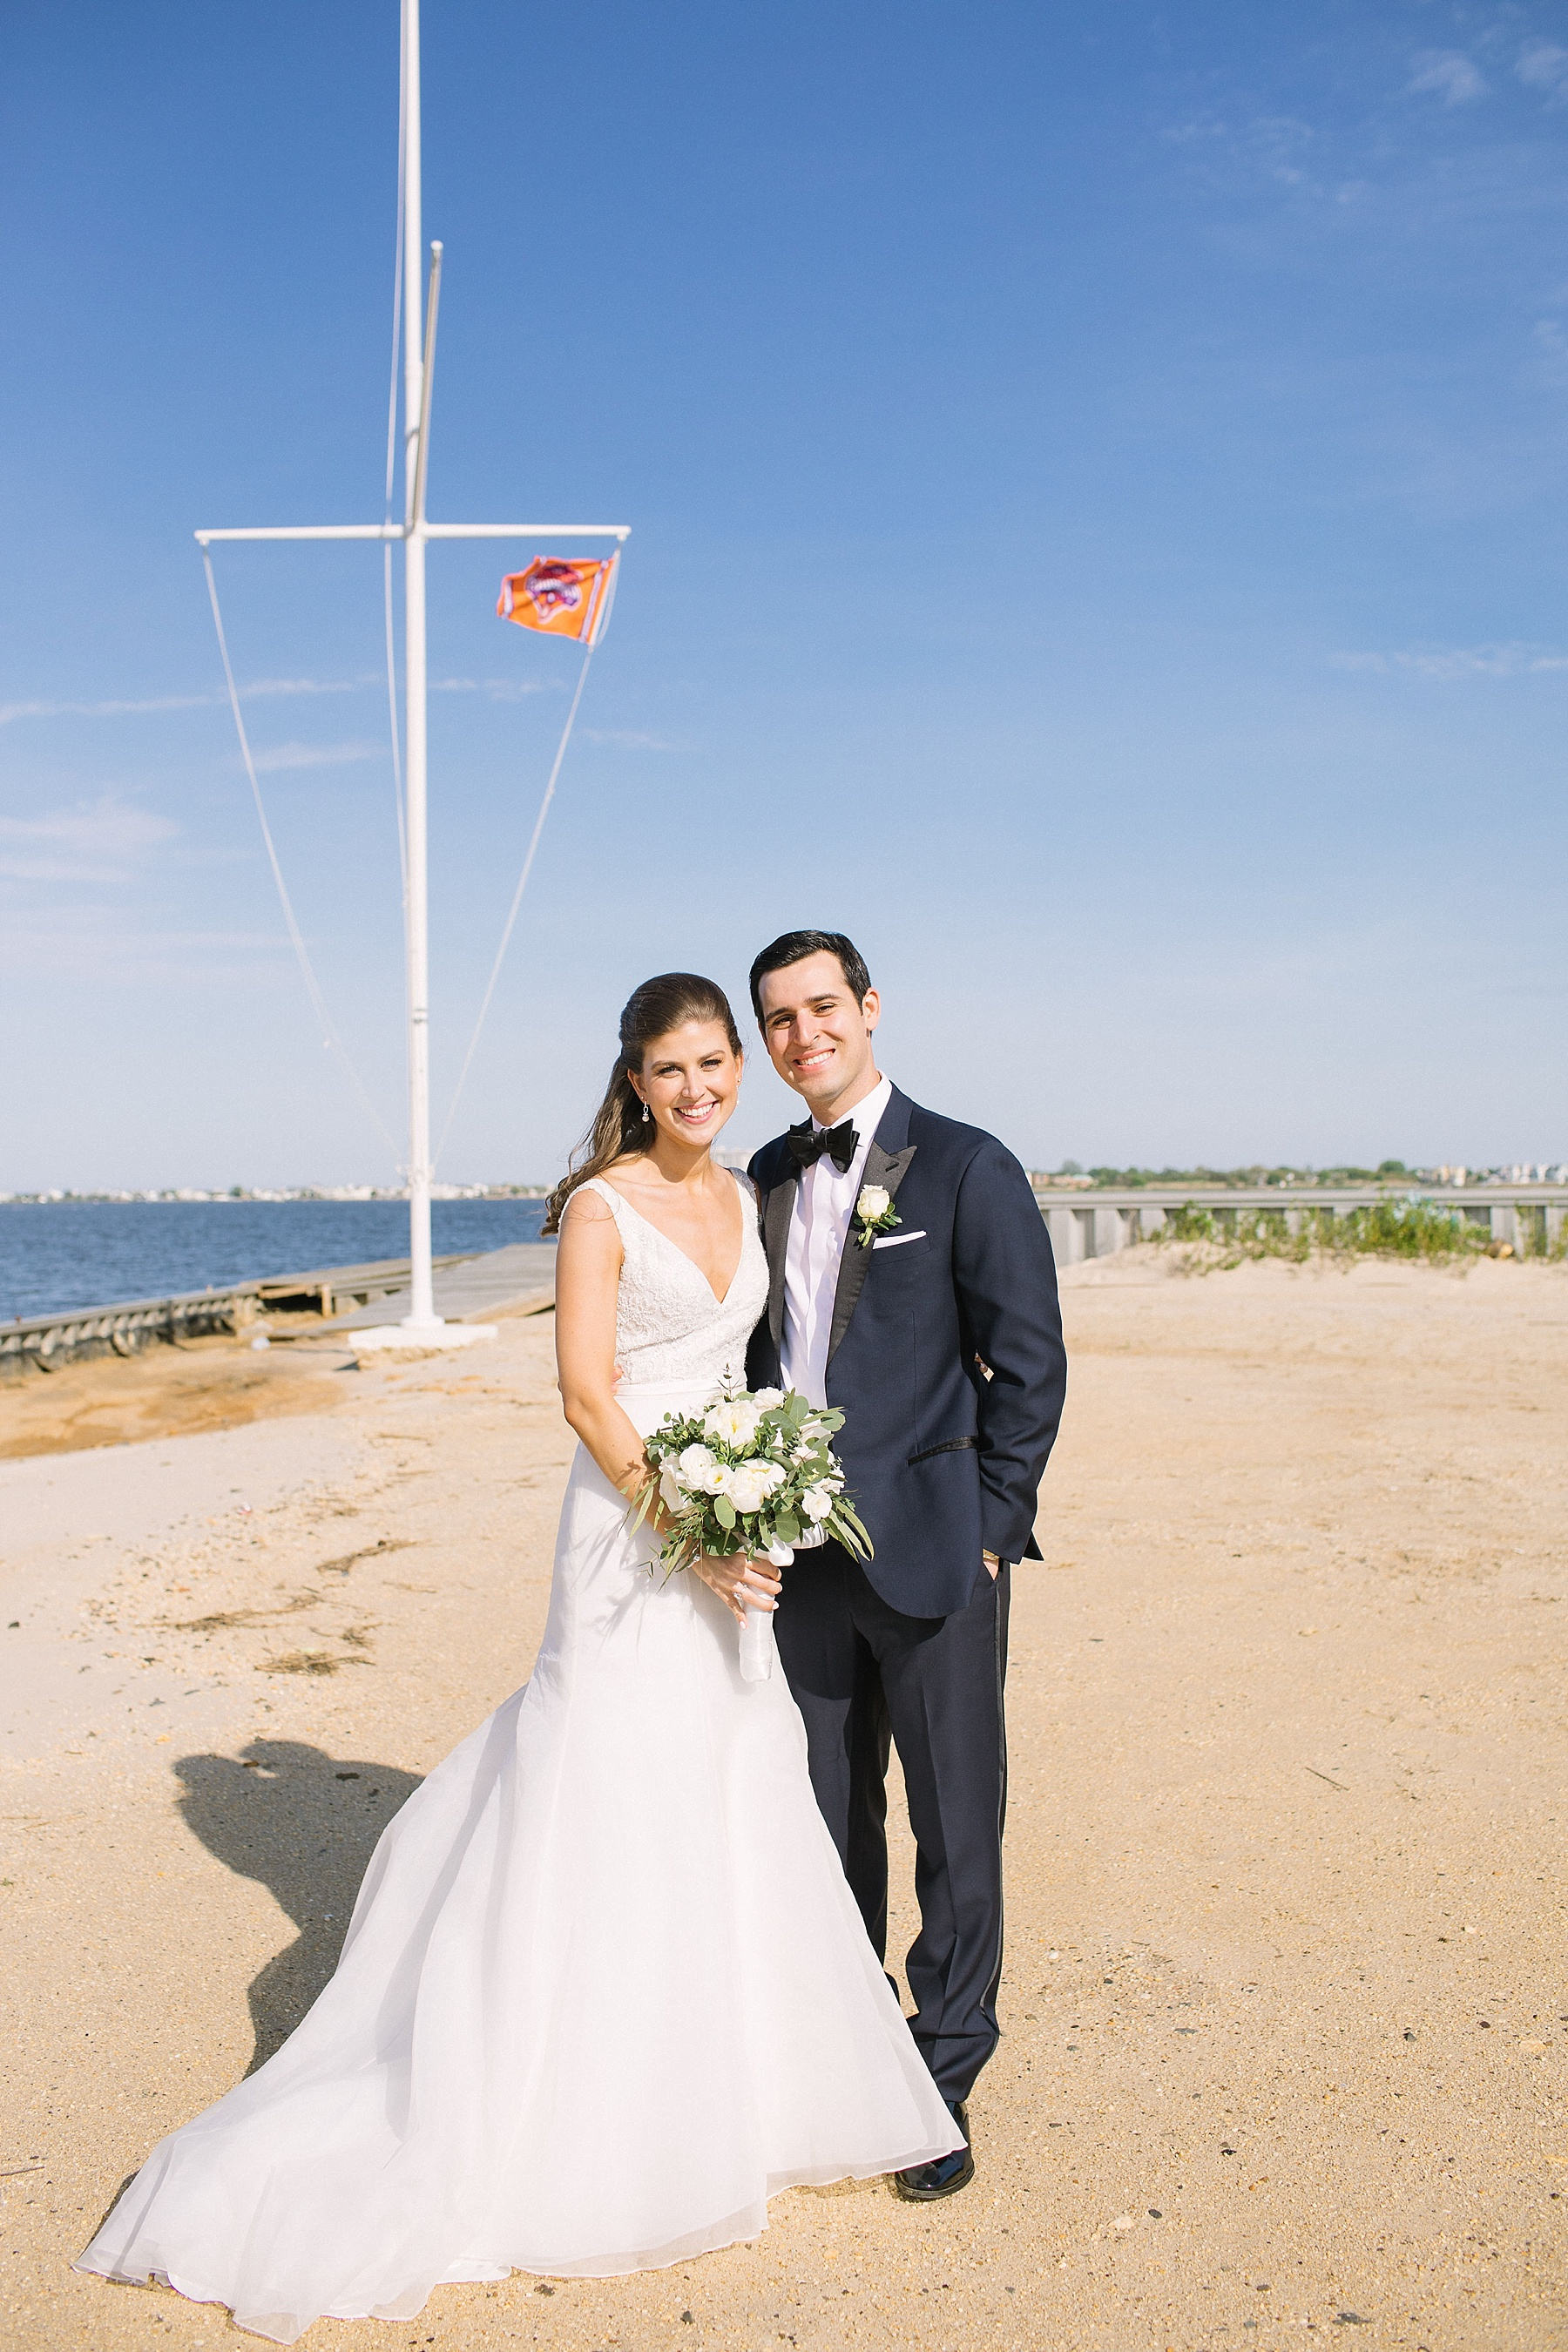 Ashley Mac Photographs | NJ wedding photographer | New Jersey wedding photographer | The Riverhouse at Rumson Country Club Wedding | Rumson NJ wedding | Rumson NJ wedding photographer | New Jersey wedding day | Romantic wedding day in NJ | Classic Rumson Country Club wedding